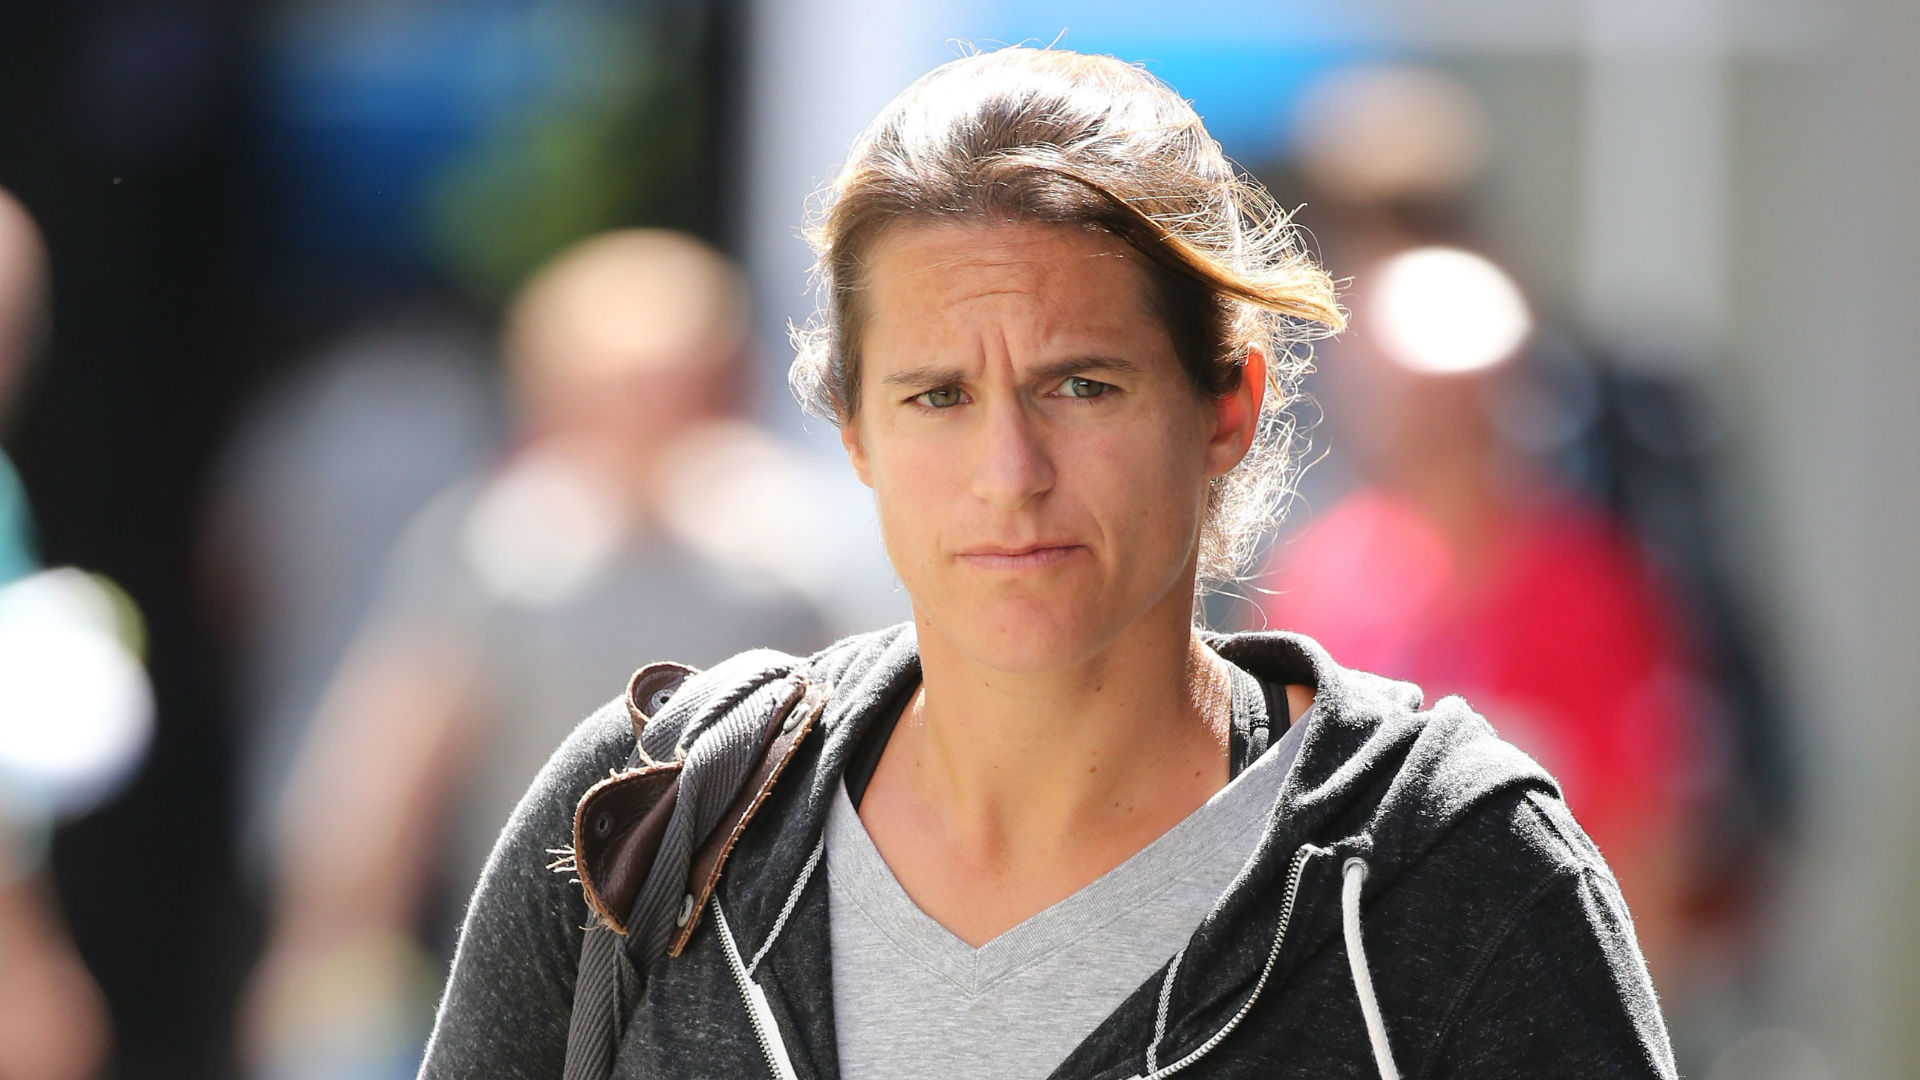 Mauresmo gives up Davis Cup role